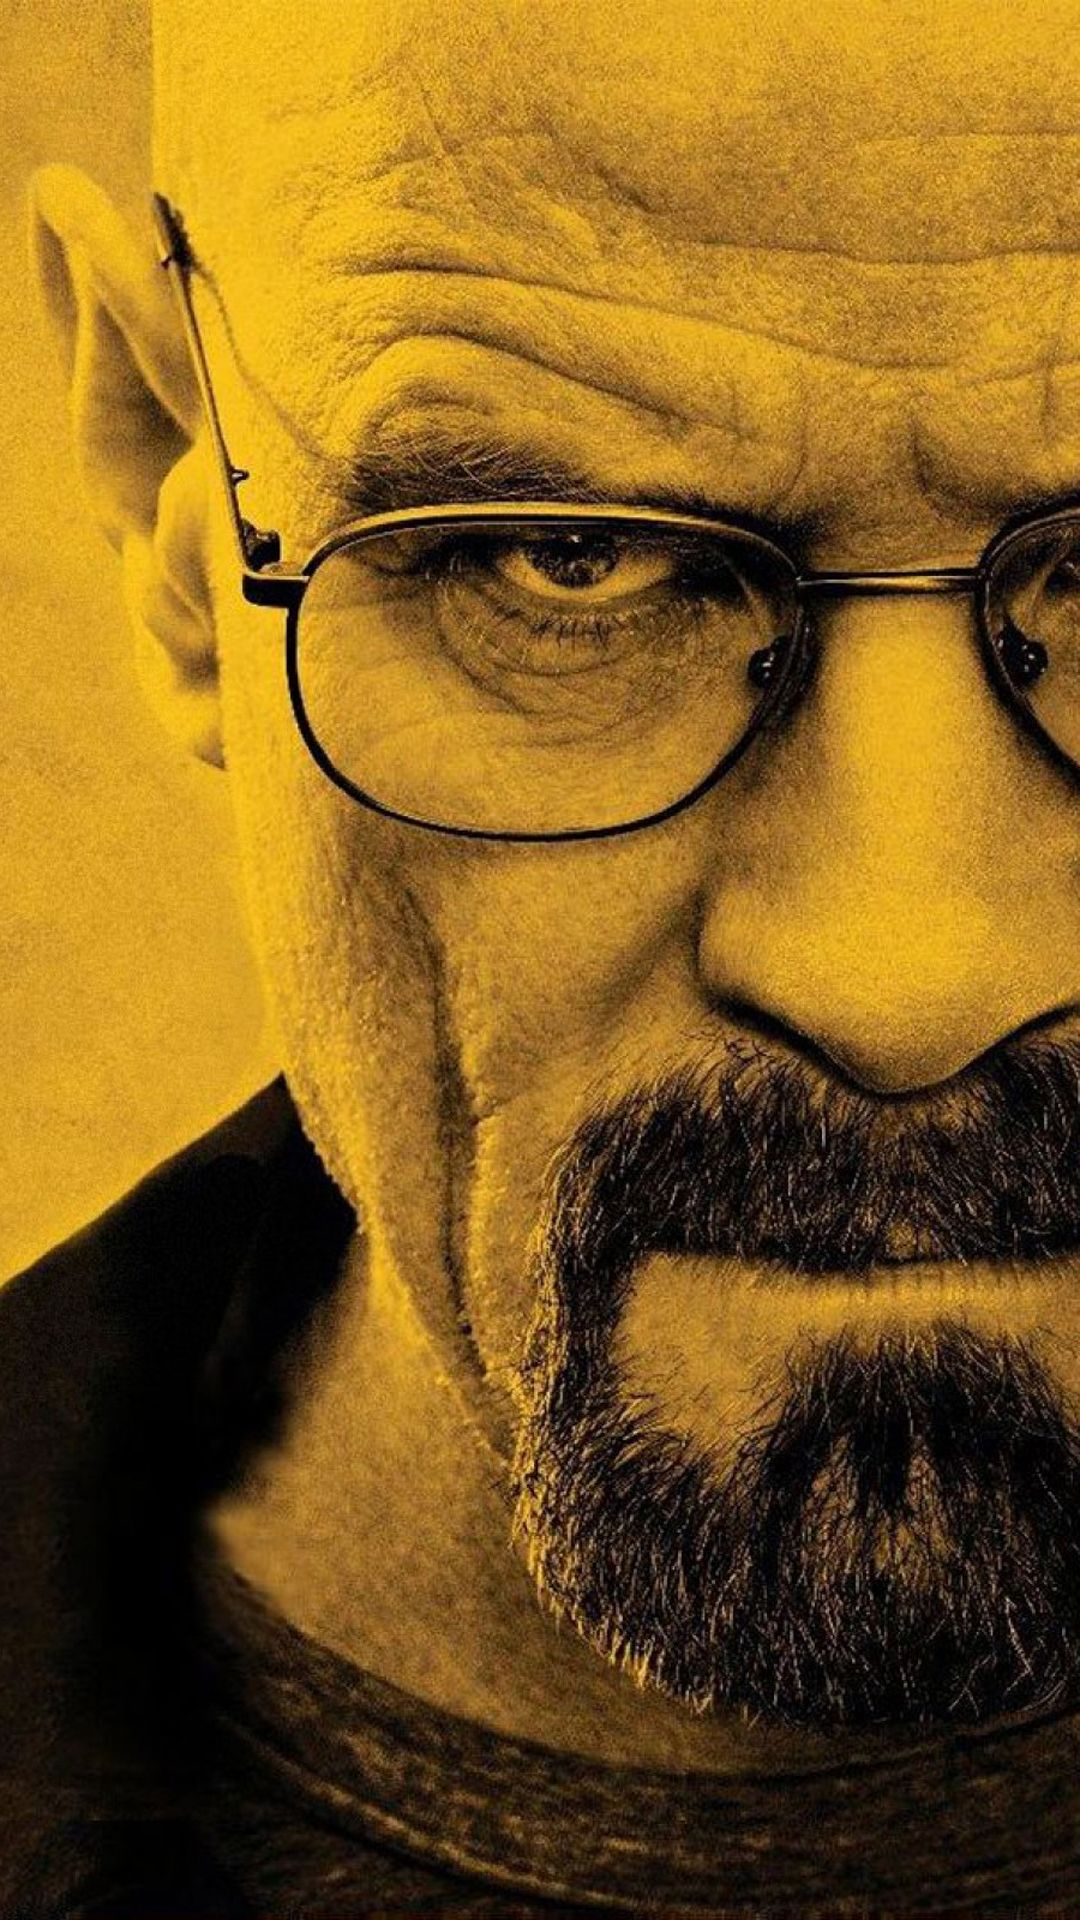 Breaking Bad Walter White Iphone 6 Plus Hd Wallpaper Cuteiphonewallpaperstumblr Iphonewall Breaking Bad Walter White Quotes Walter White